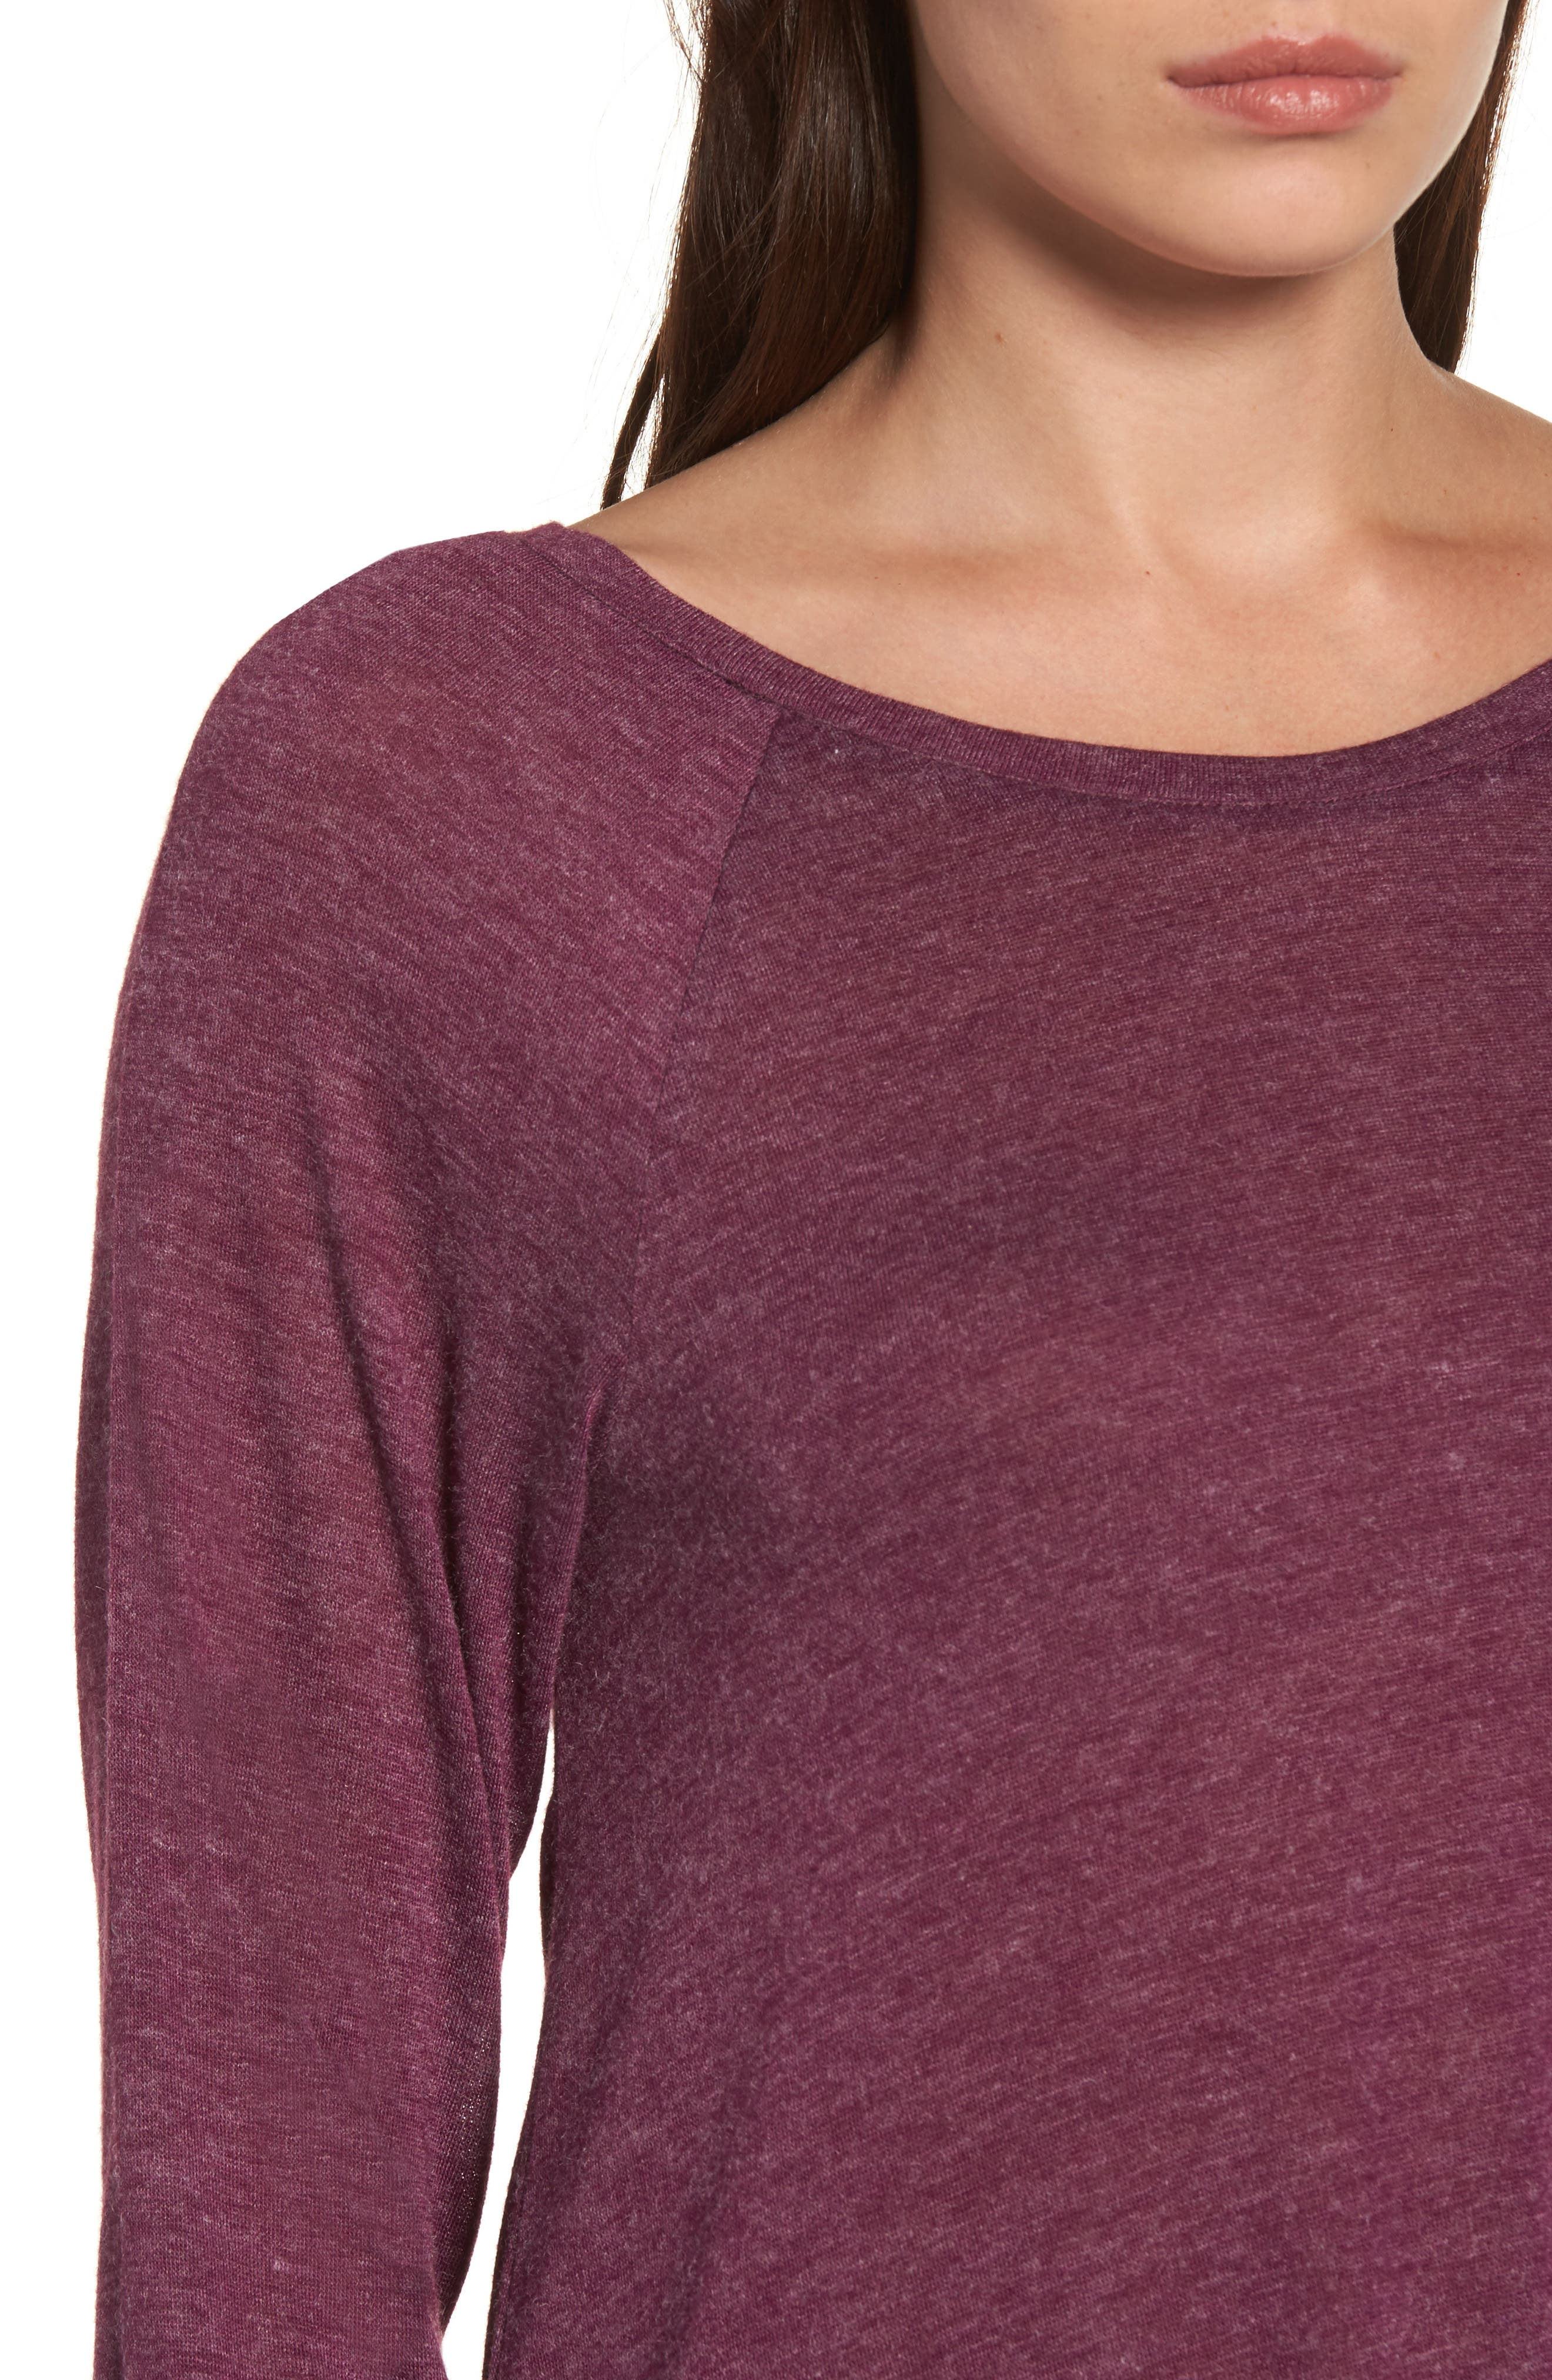 High/Low Tunic Sweatshirt,                             Alternate thumbnail 4, color,                             Mulberry